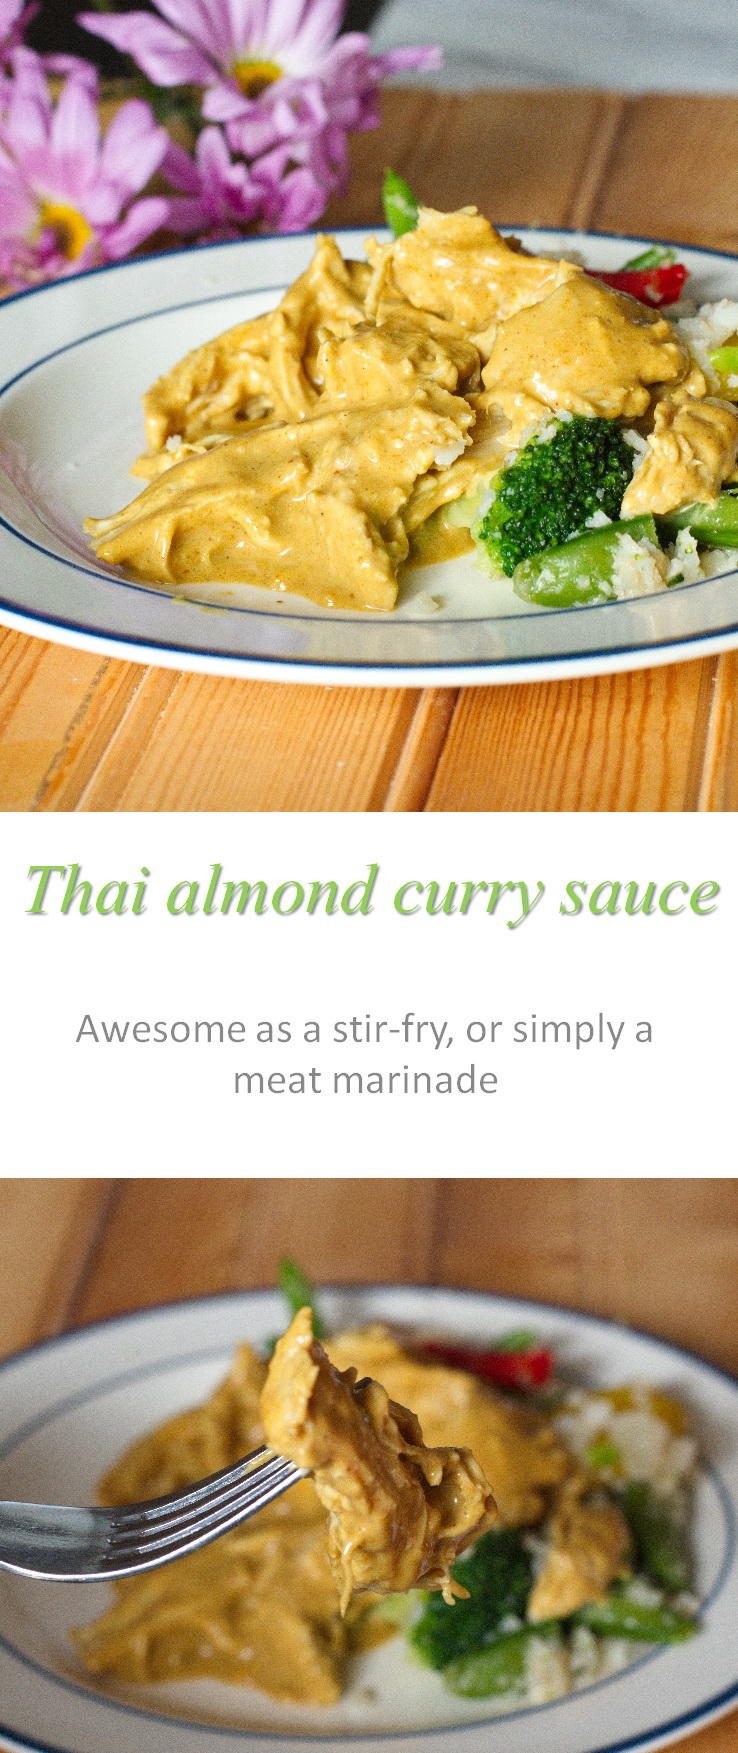 A yummy versatile, Whole30 compliant sauce that can be used to make a Thai almond curry flavor for any meat and/or vegetable combination. #thai